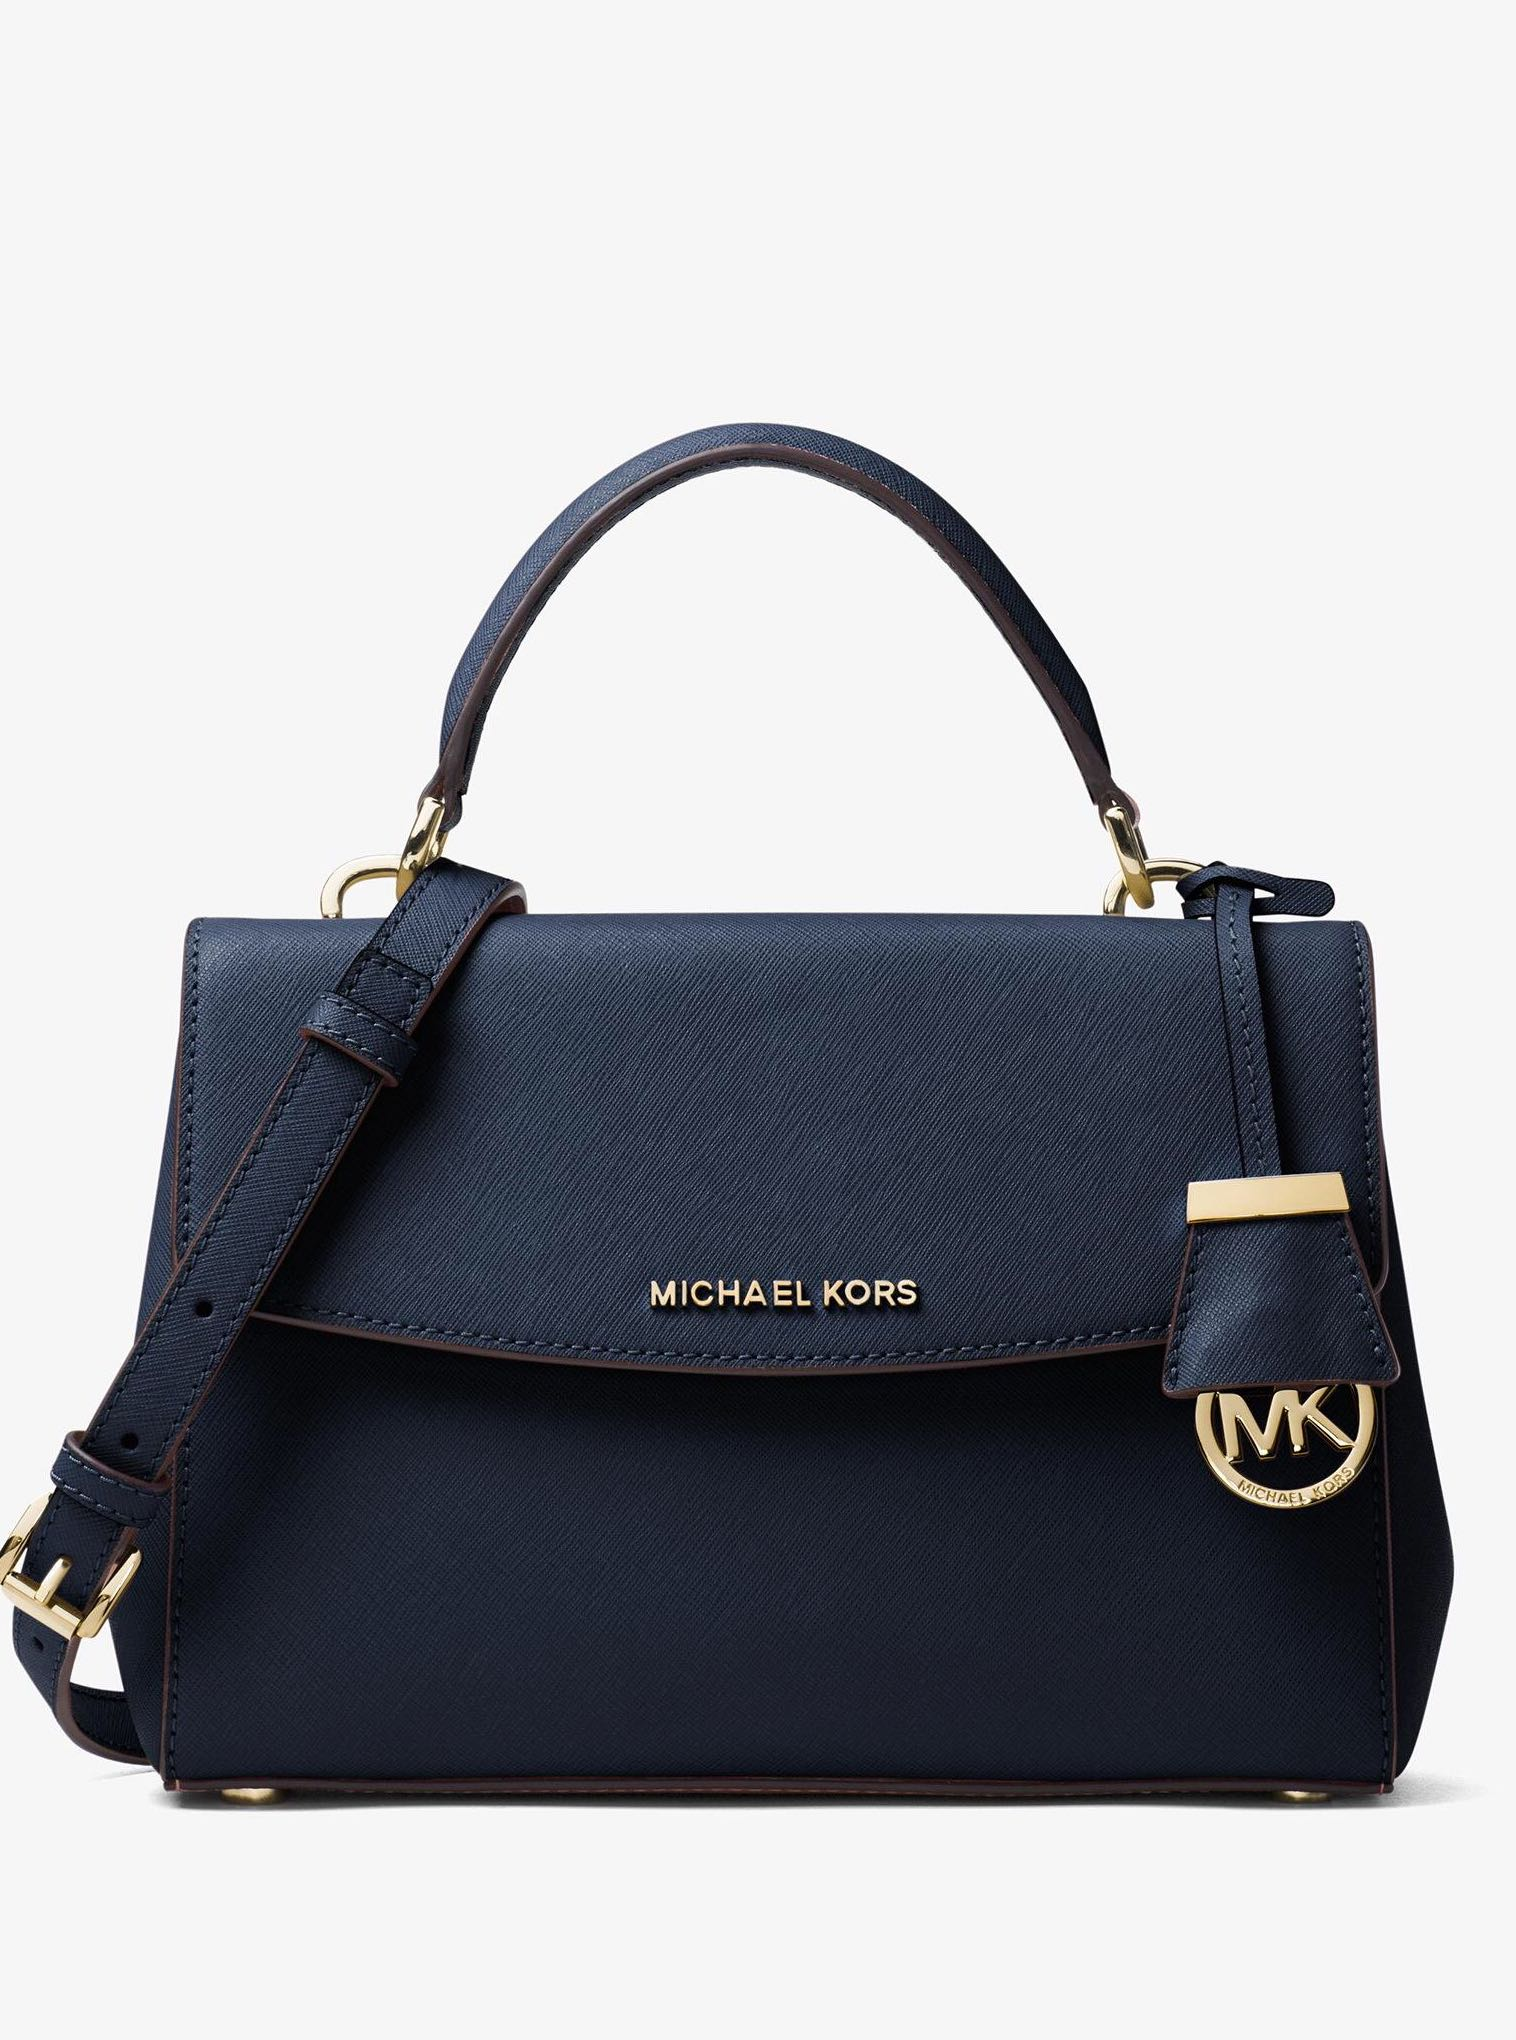 306a7dbe9 ... coupon code for authentic mk michael kors ava small saffiano leather  satchel shoulder crossbody sling bag